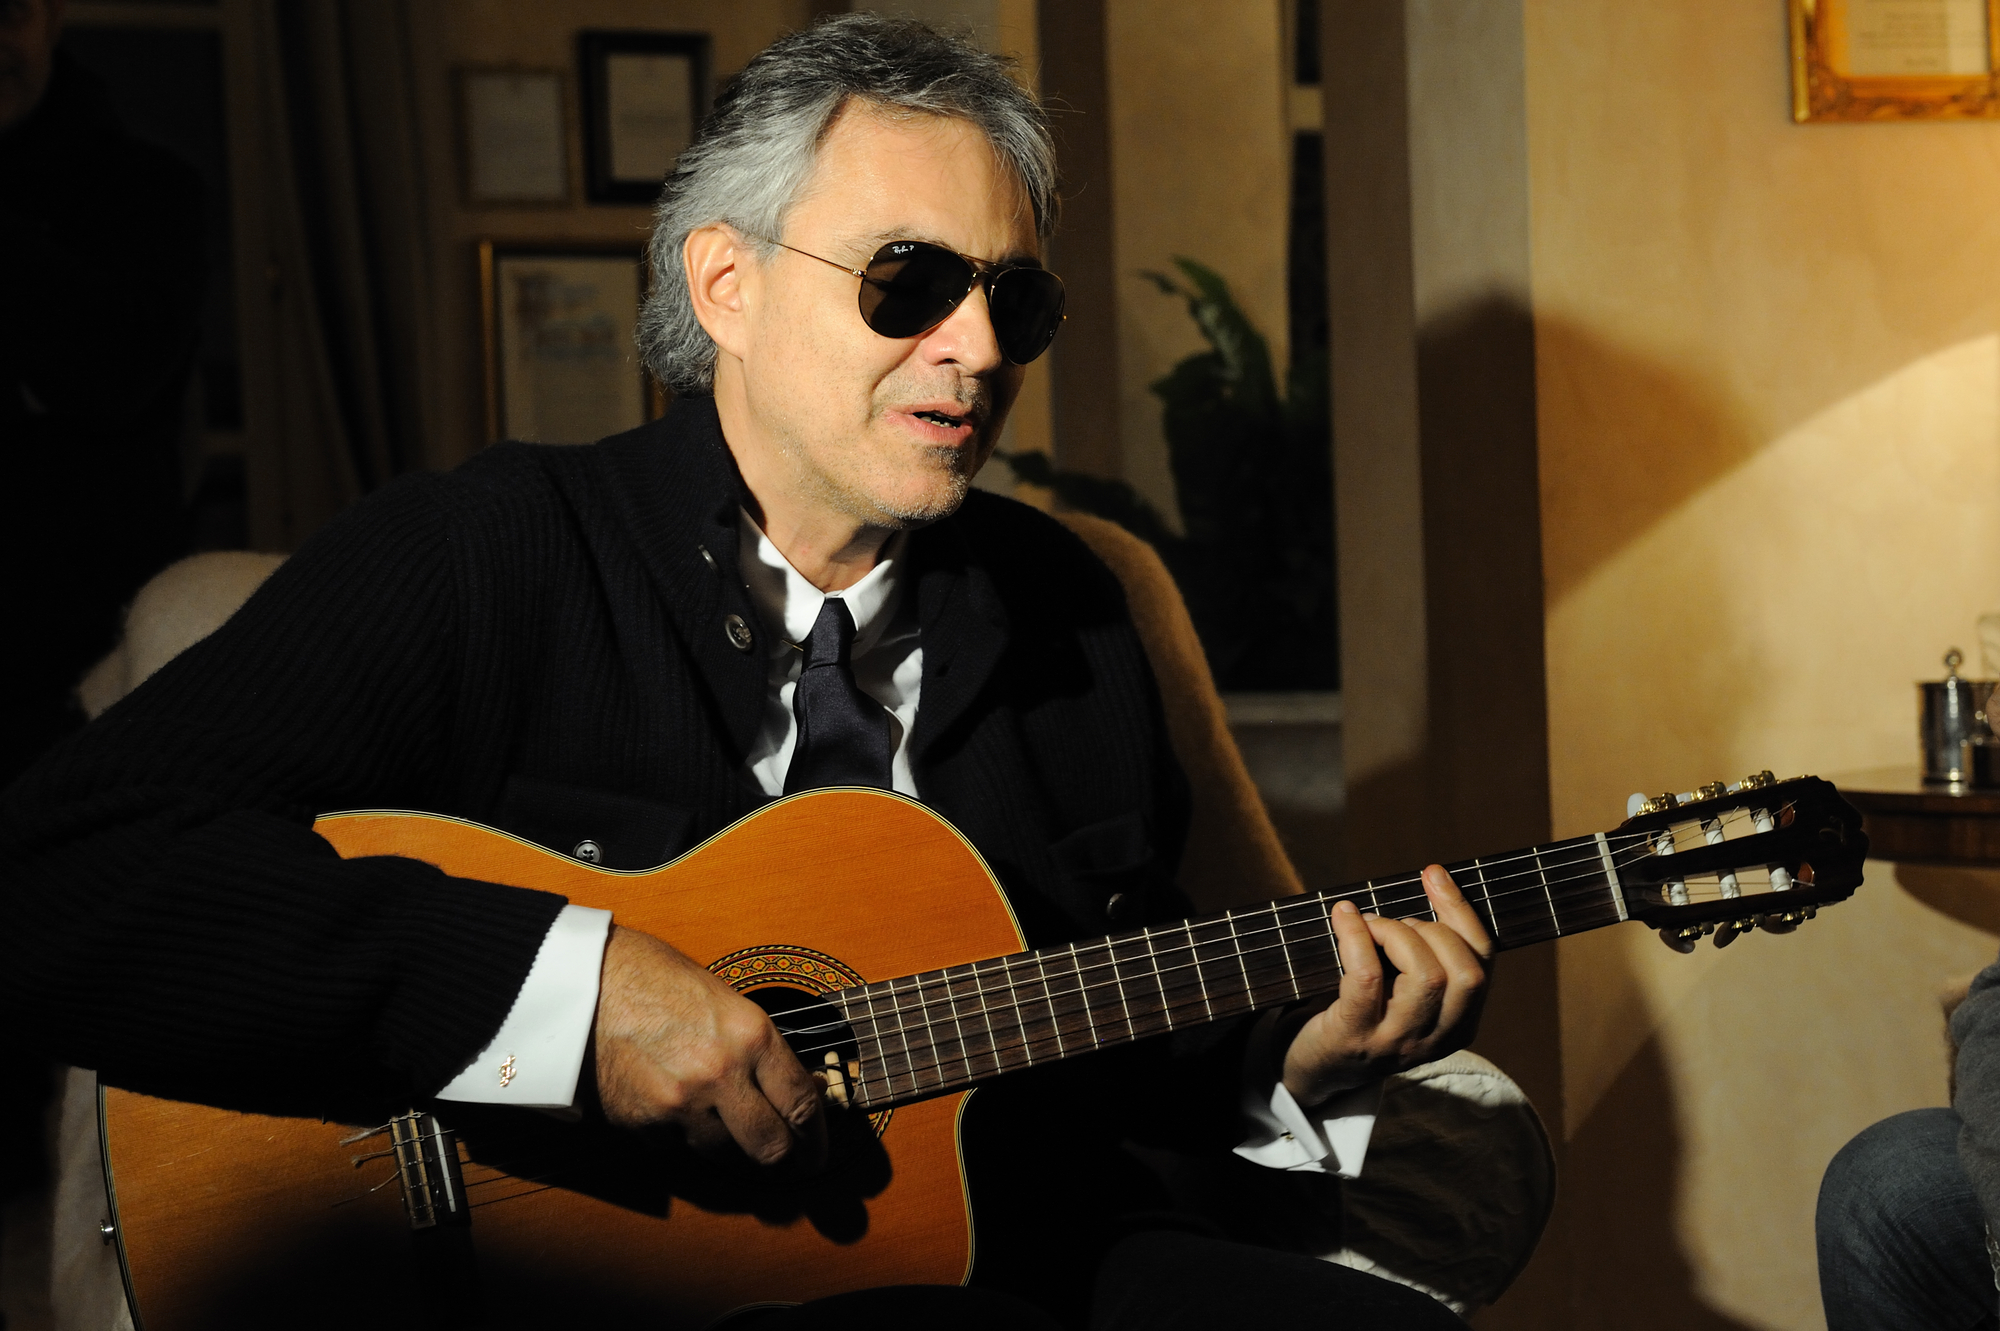 Andrea Bocelli playing a guitar